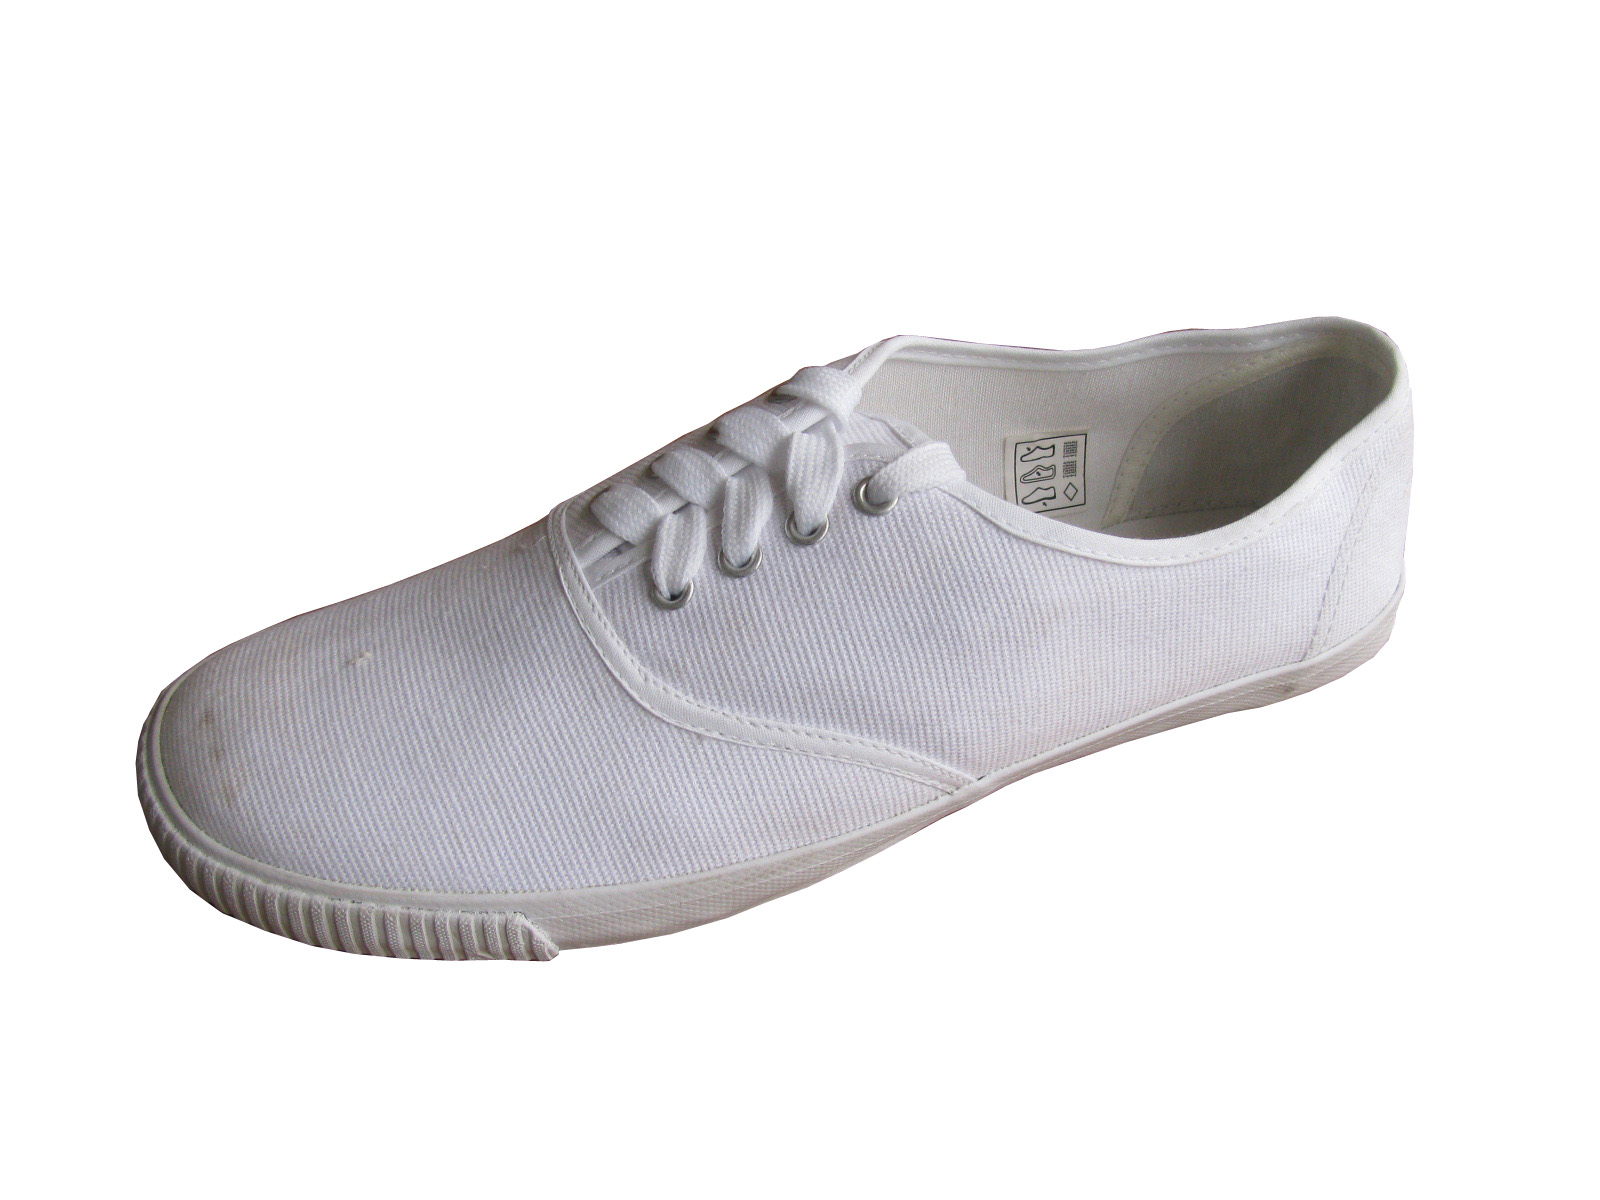 Product Name: white canvas shoes